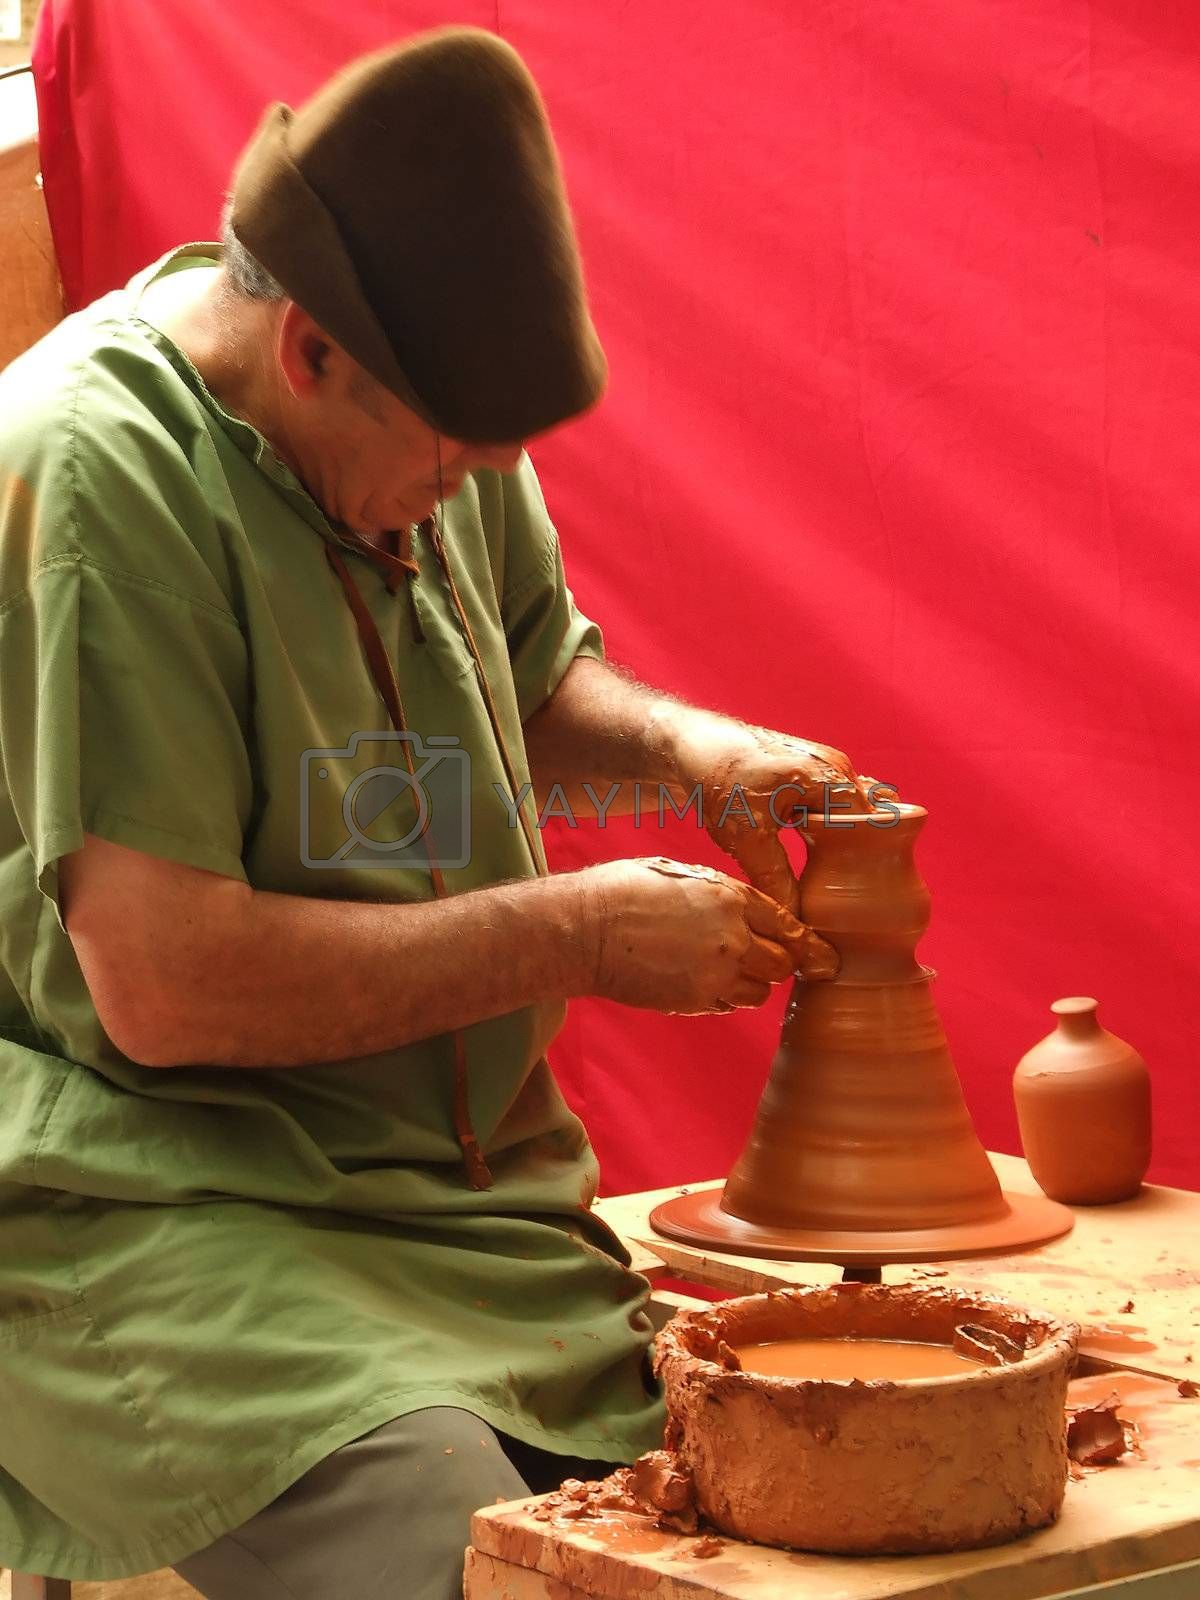 Pottery hands  by PauloResende